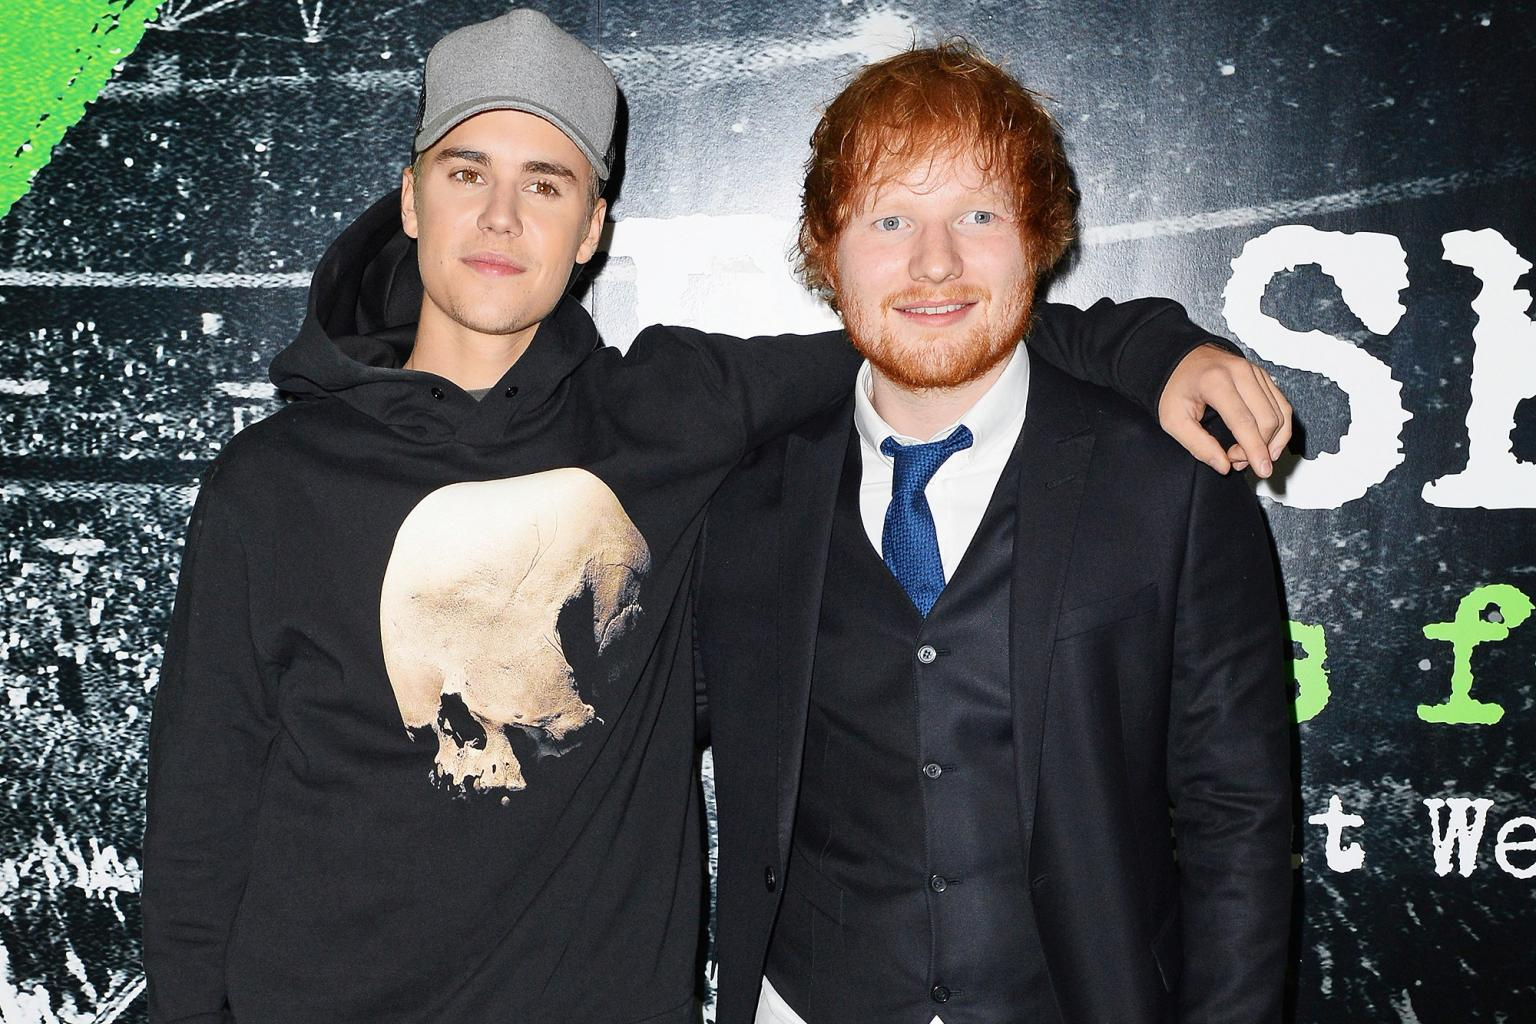 Ed Sheeran Reveals He Once Got Drunk and Smashed Justin Bieber in the Face with a Golf Club